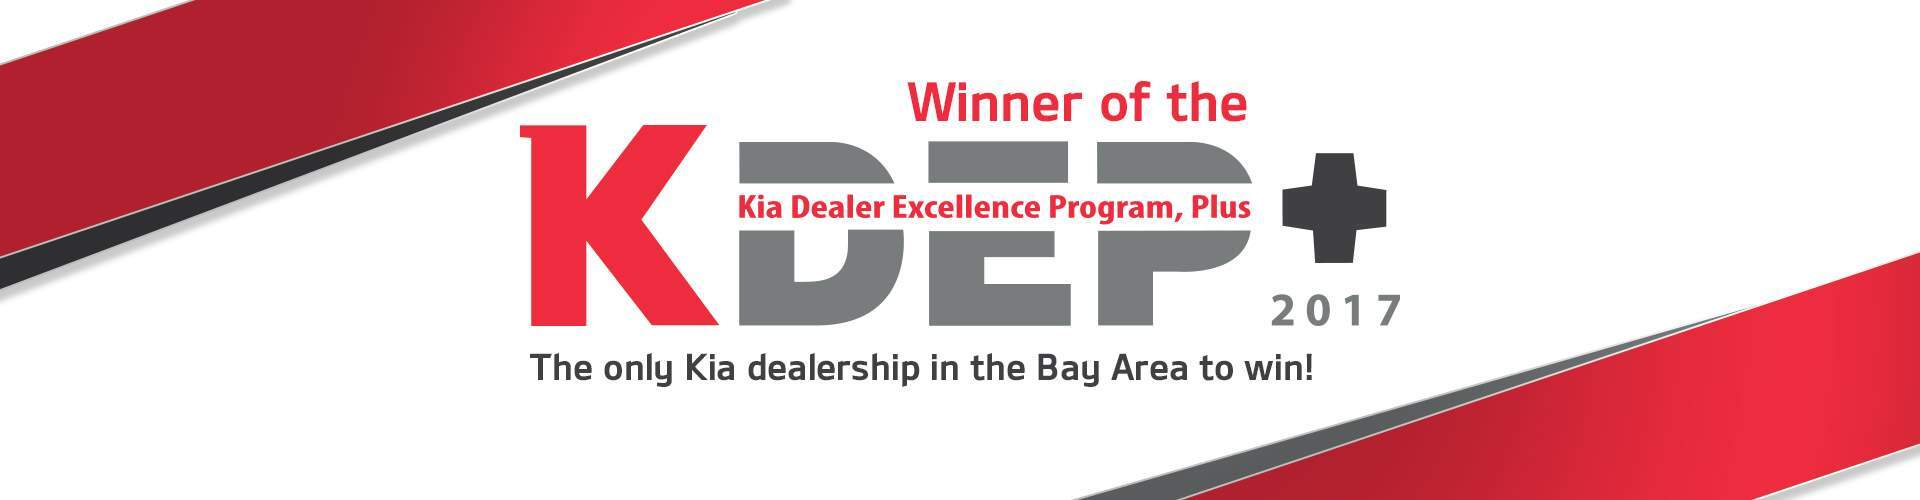 Kia Dealer Excellence Program